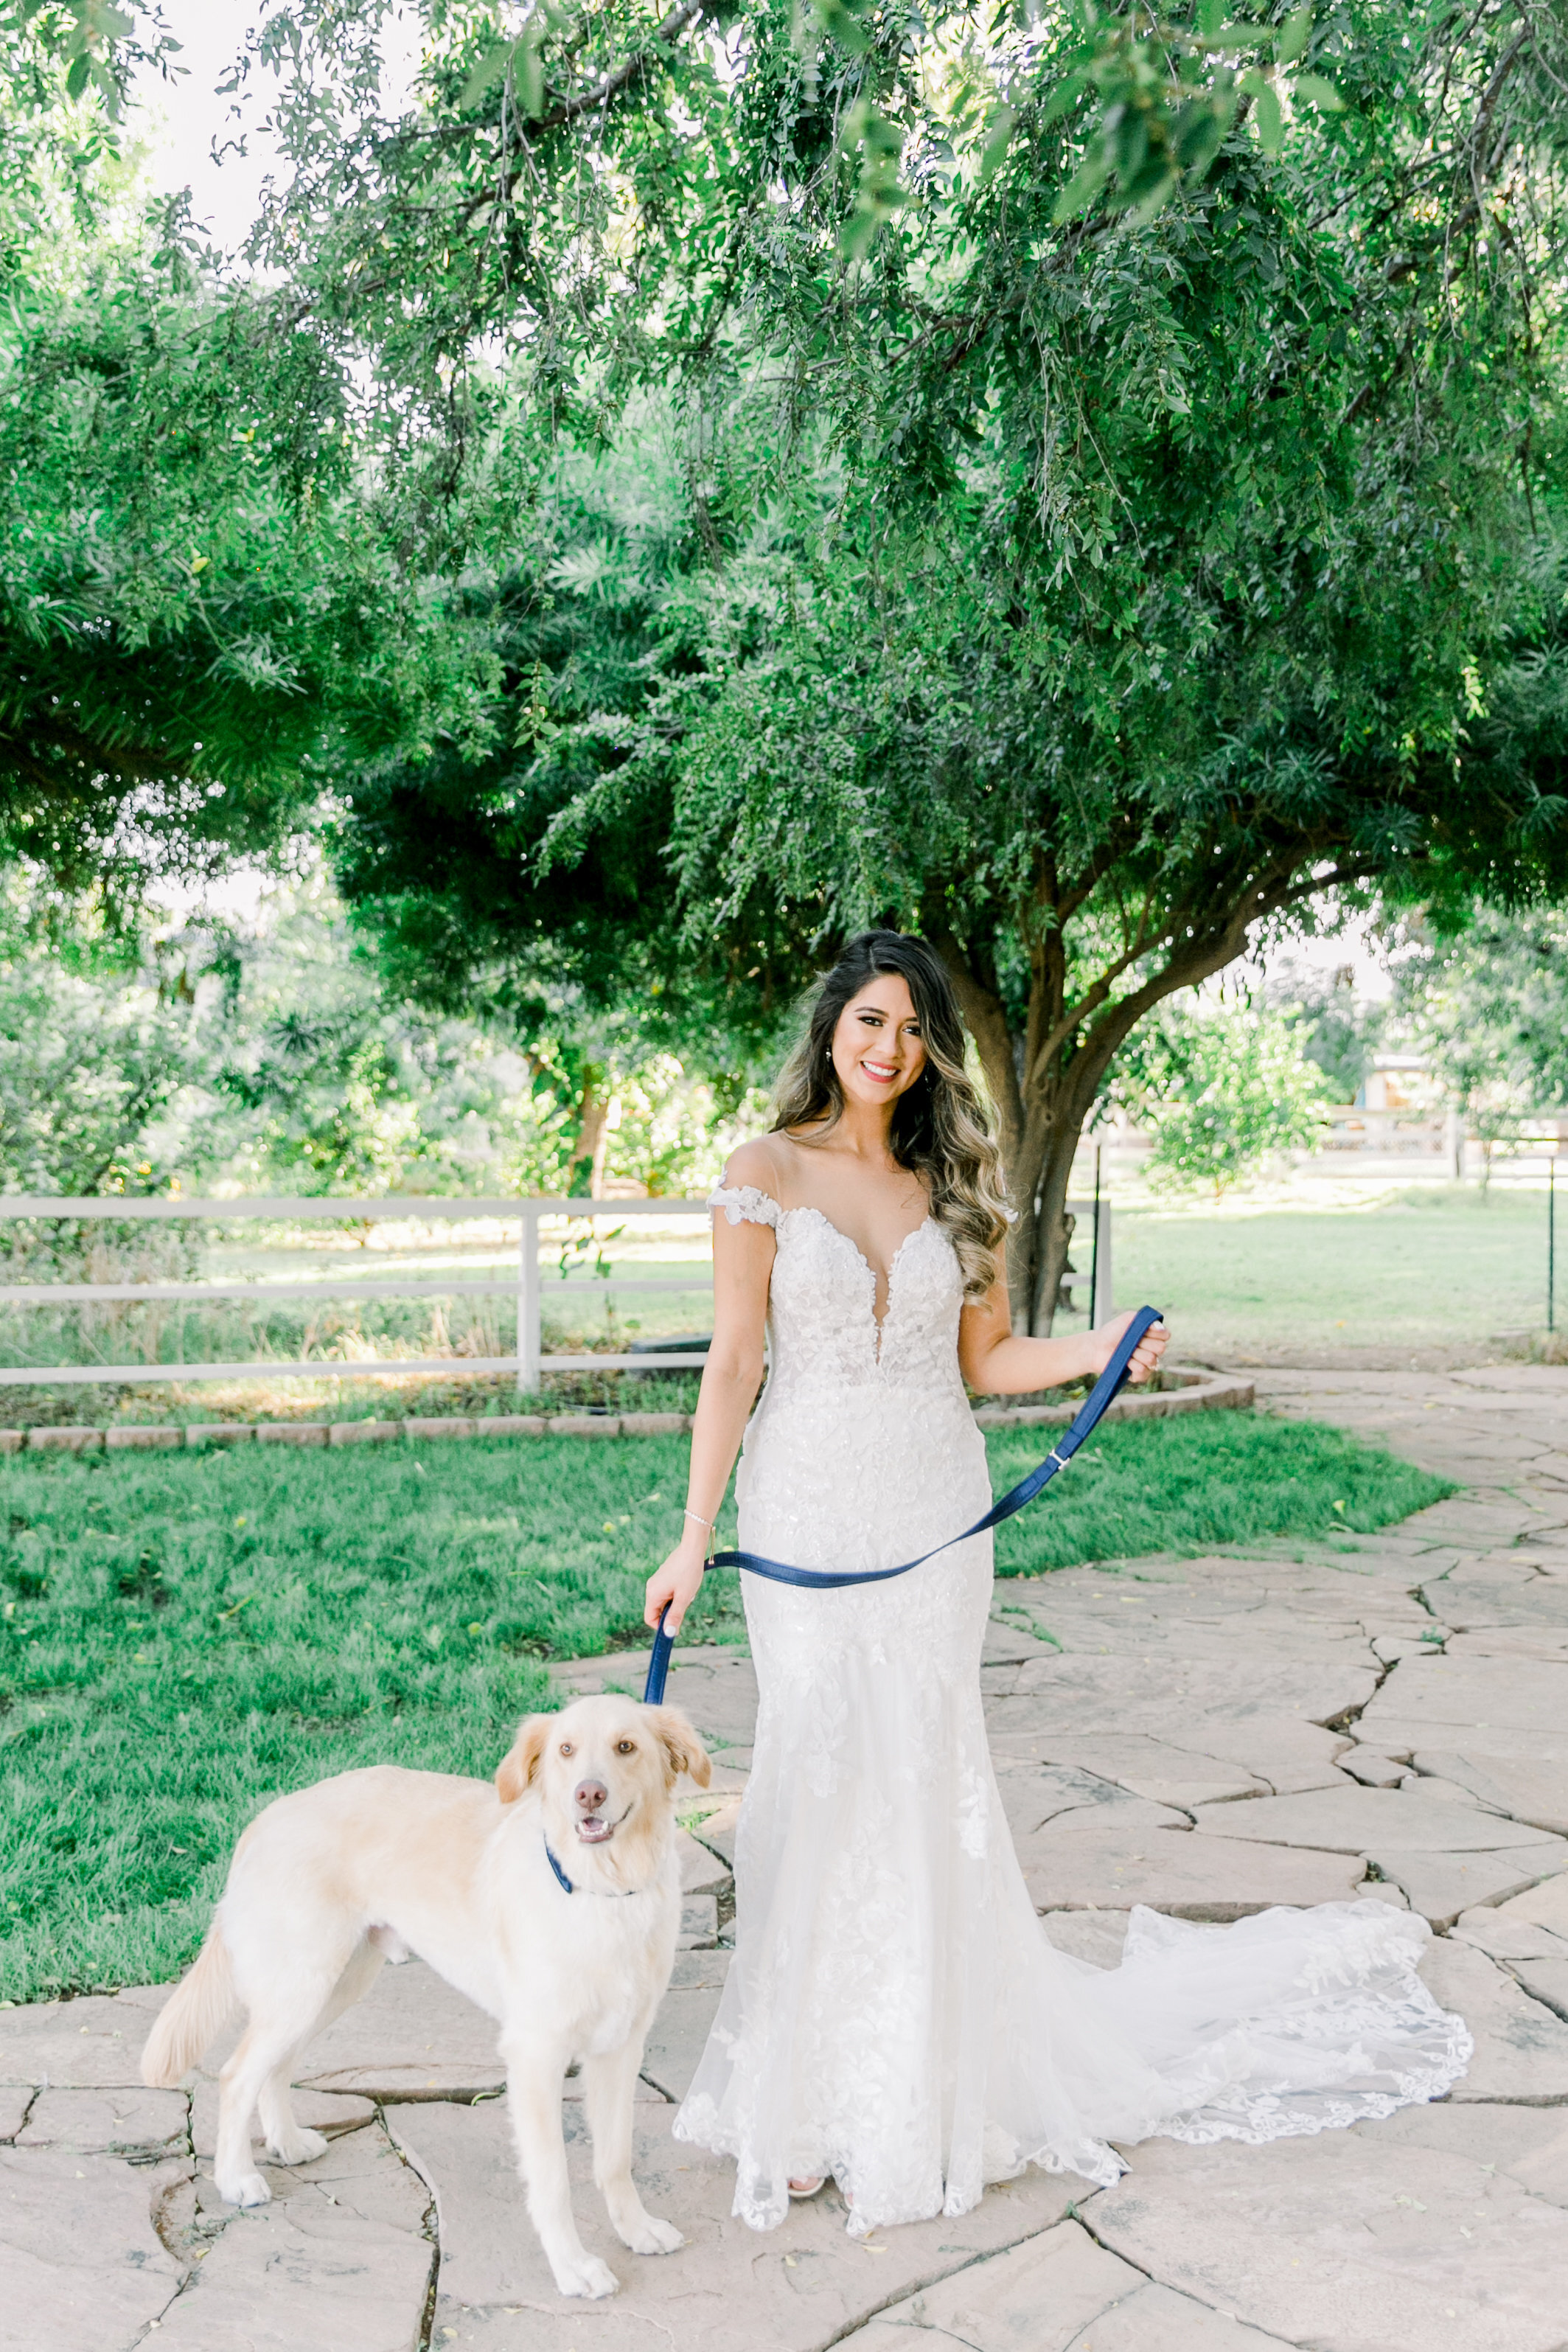 Karlie Colleen Photography - Phoenix Arizona - Farm At South Mountain Venue - Vanessa & Robert-309